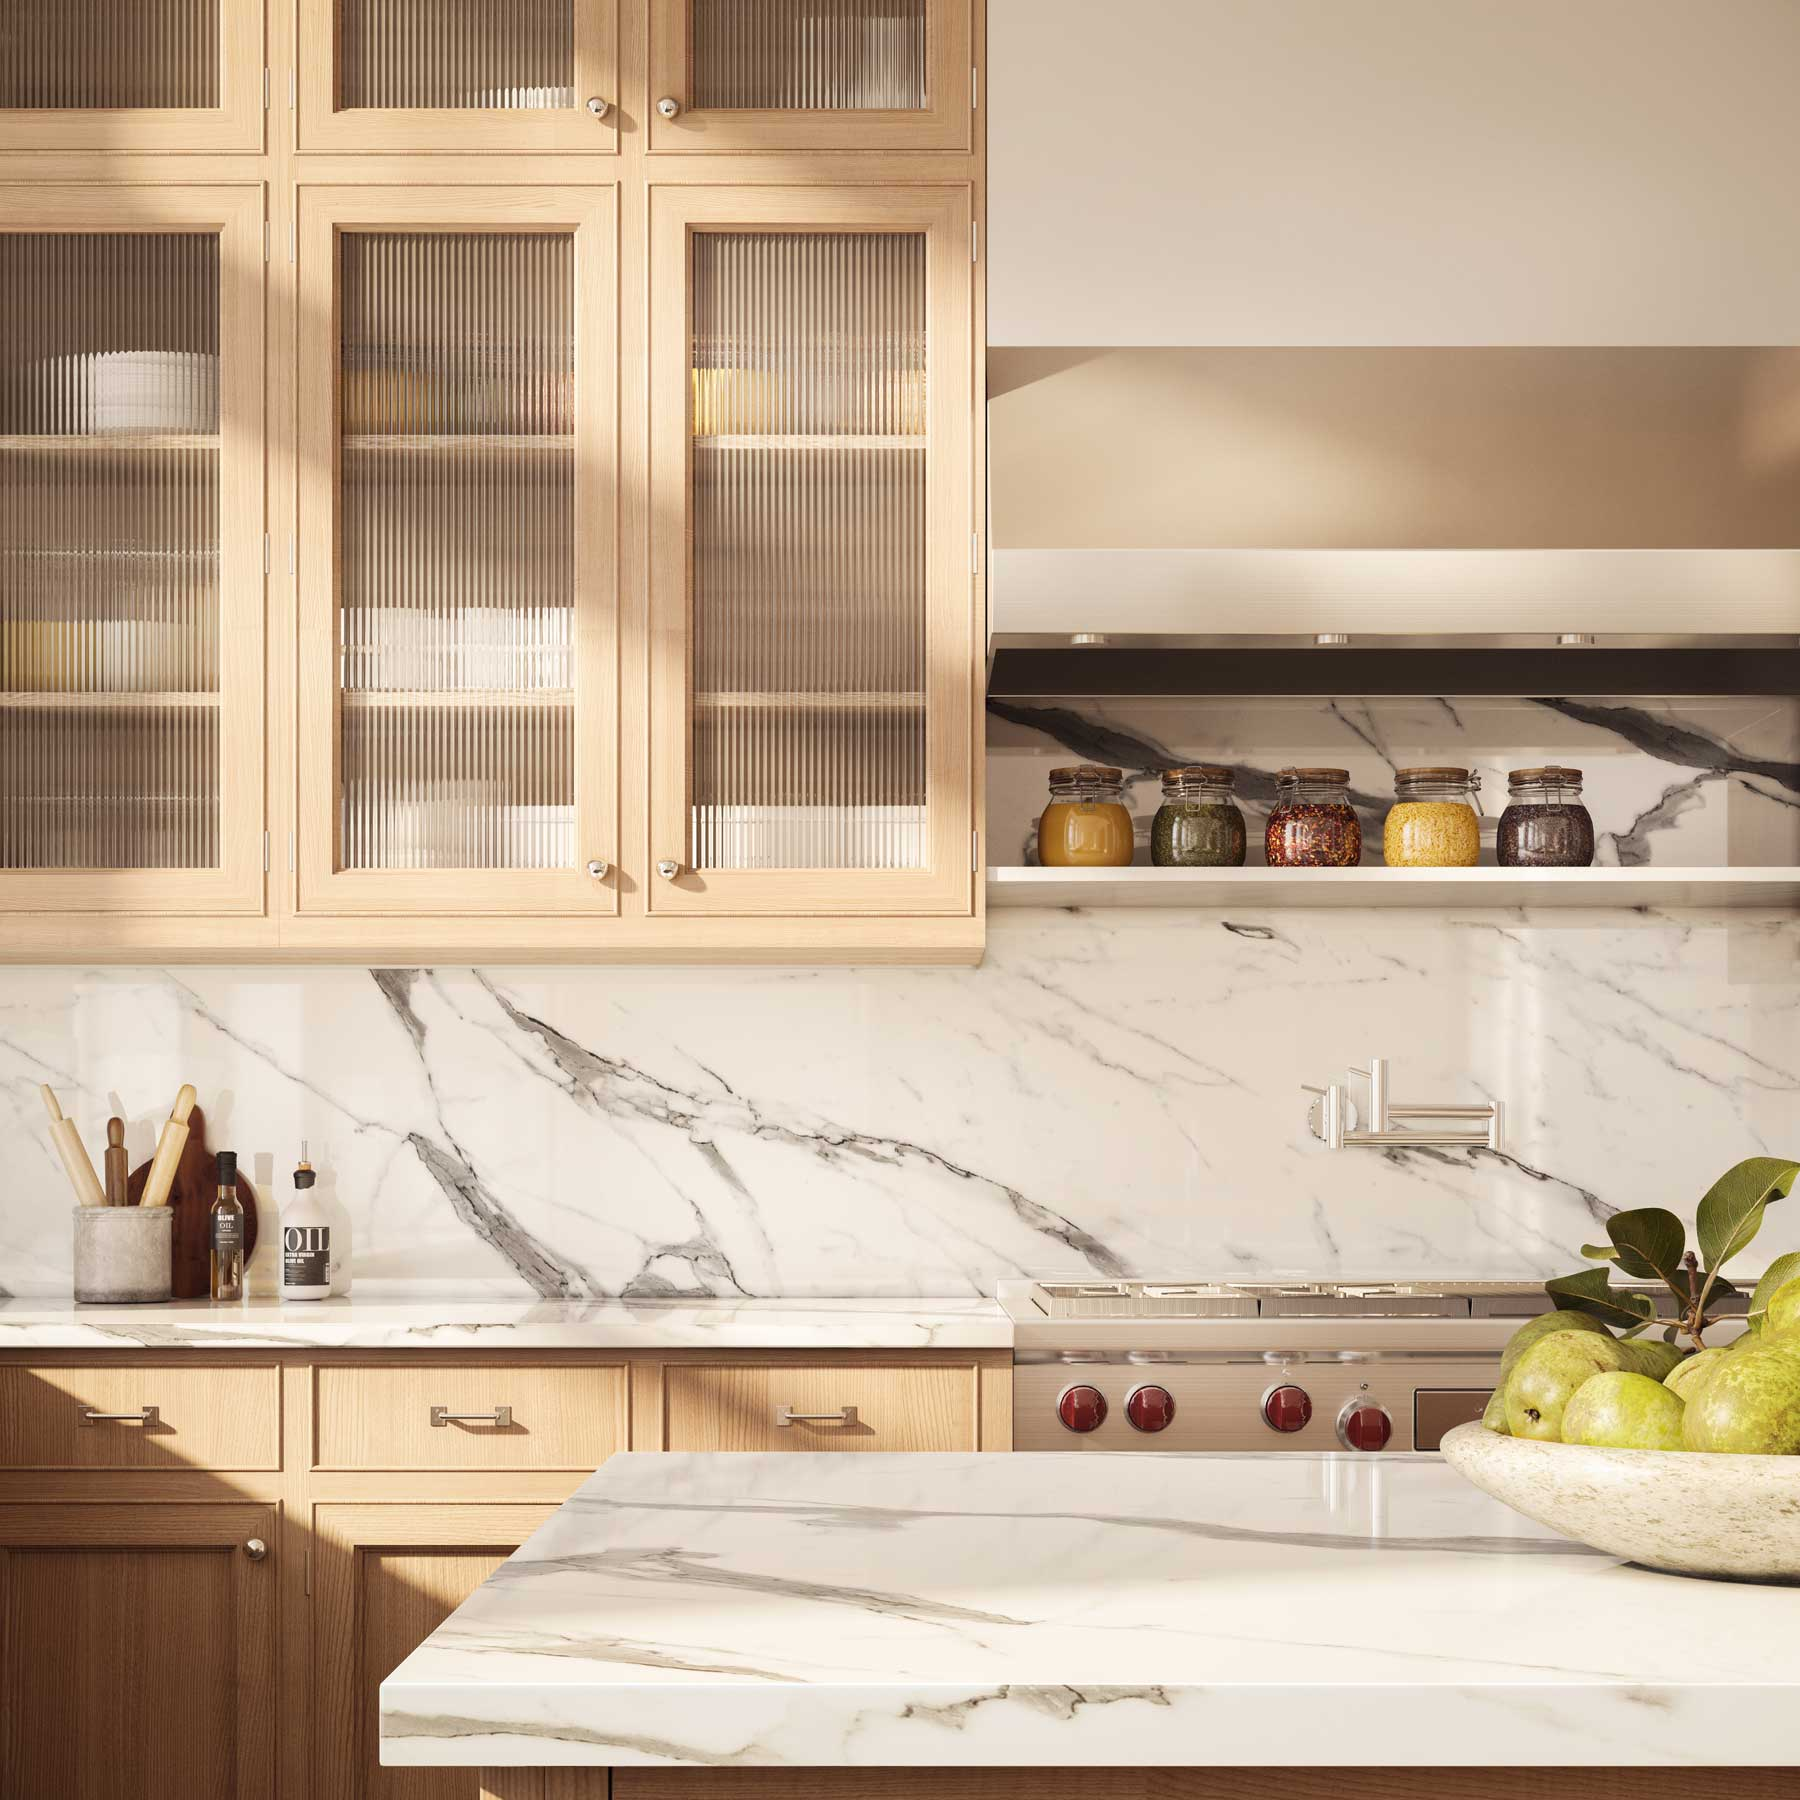 Christopher Peacock Kitchens: 13 One-Of-A-Kind Condos In The UWS